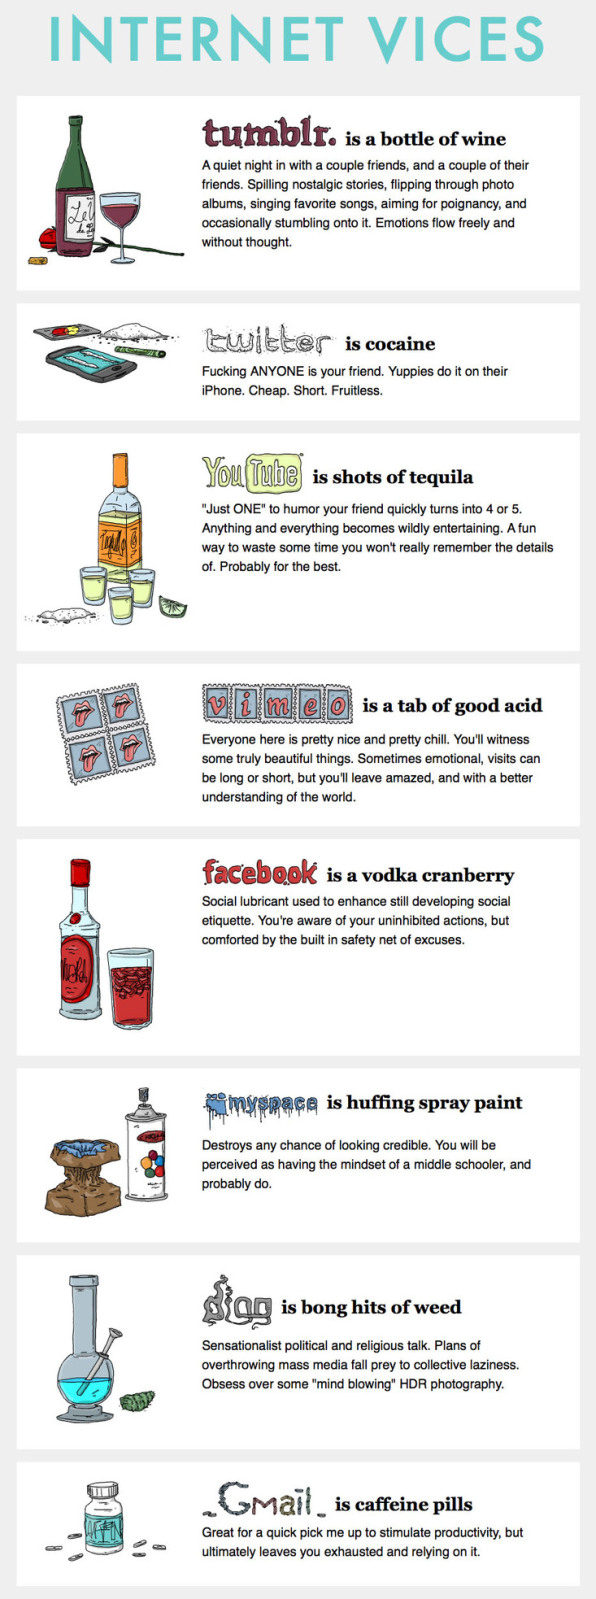 If Social Media were a drug…